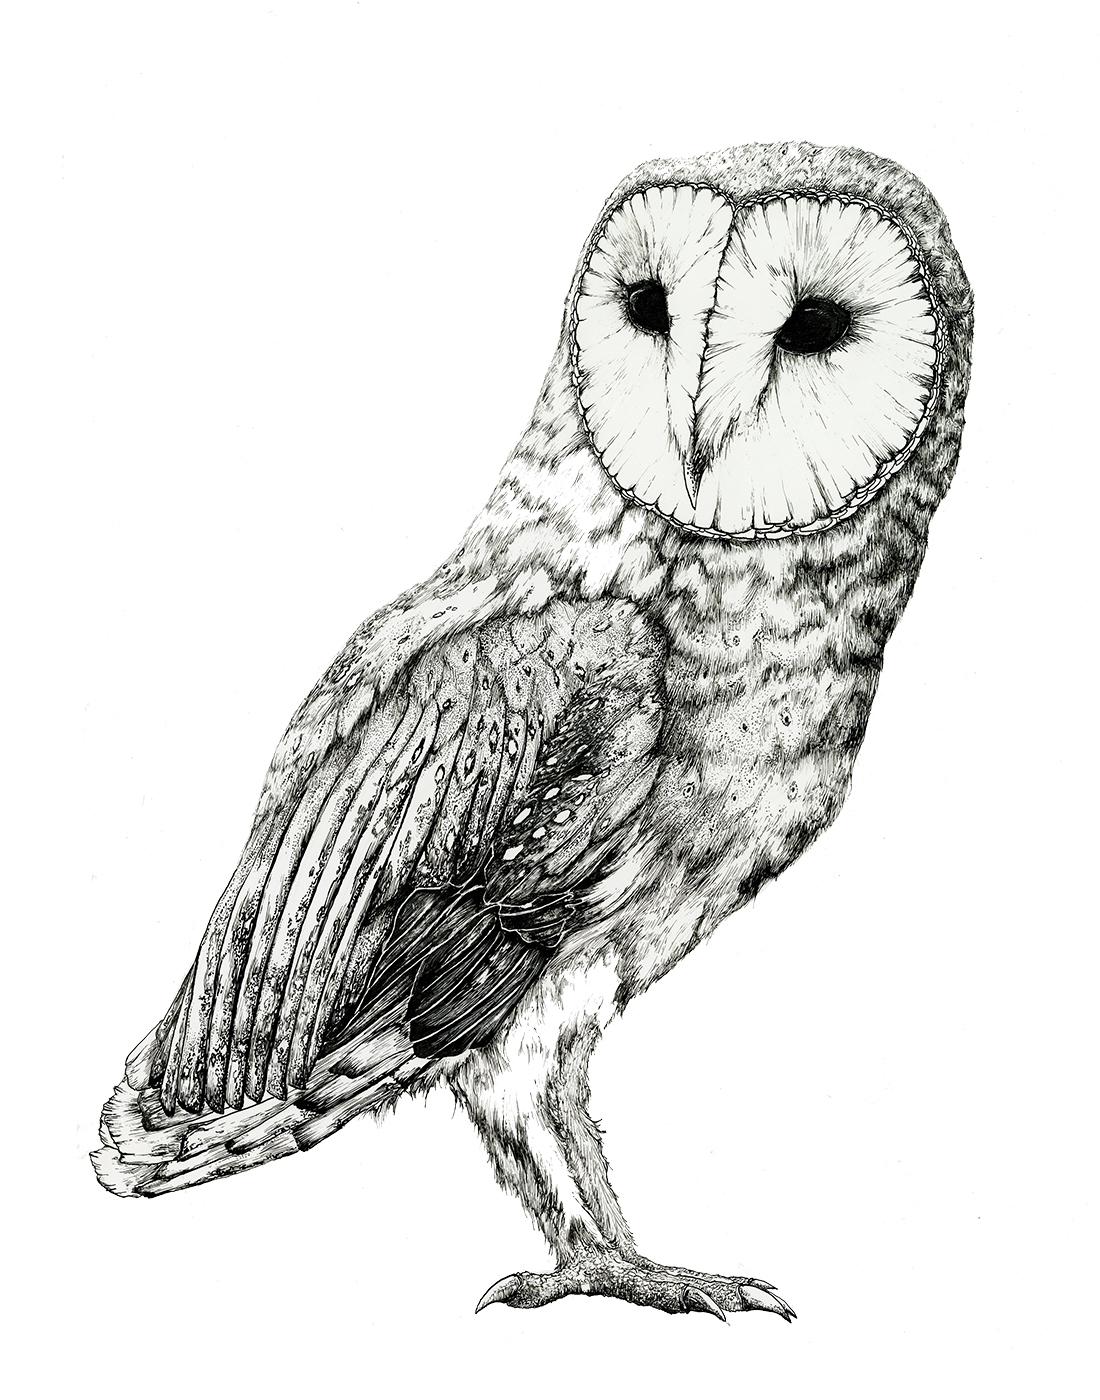 Barn Owl - Pen and Ink Study on Behance